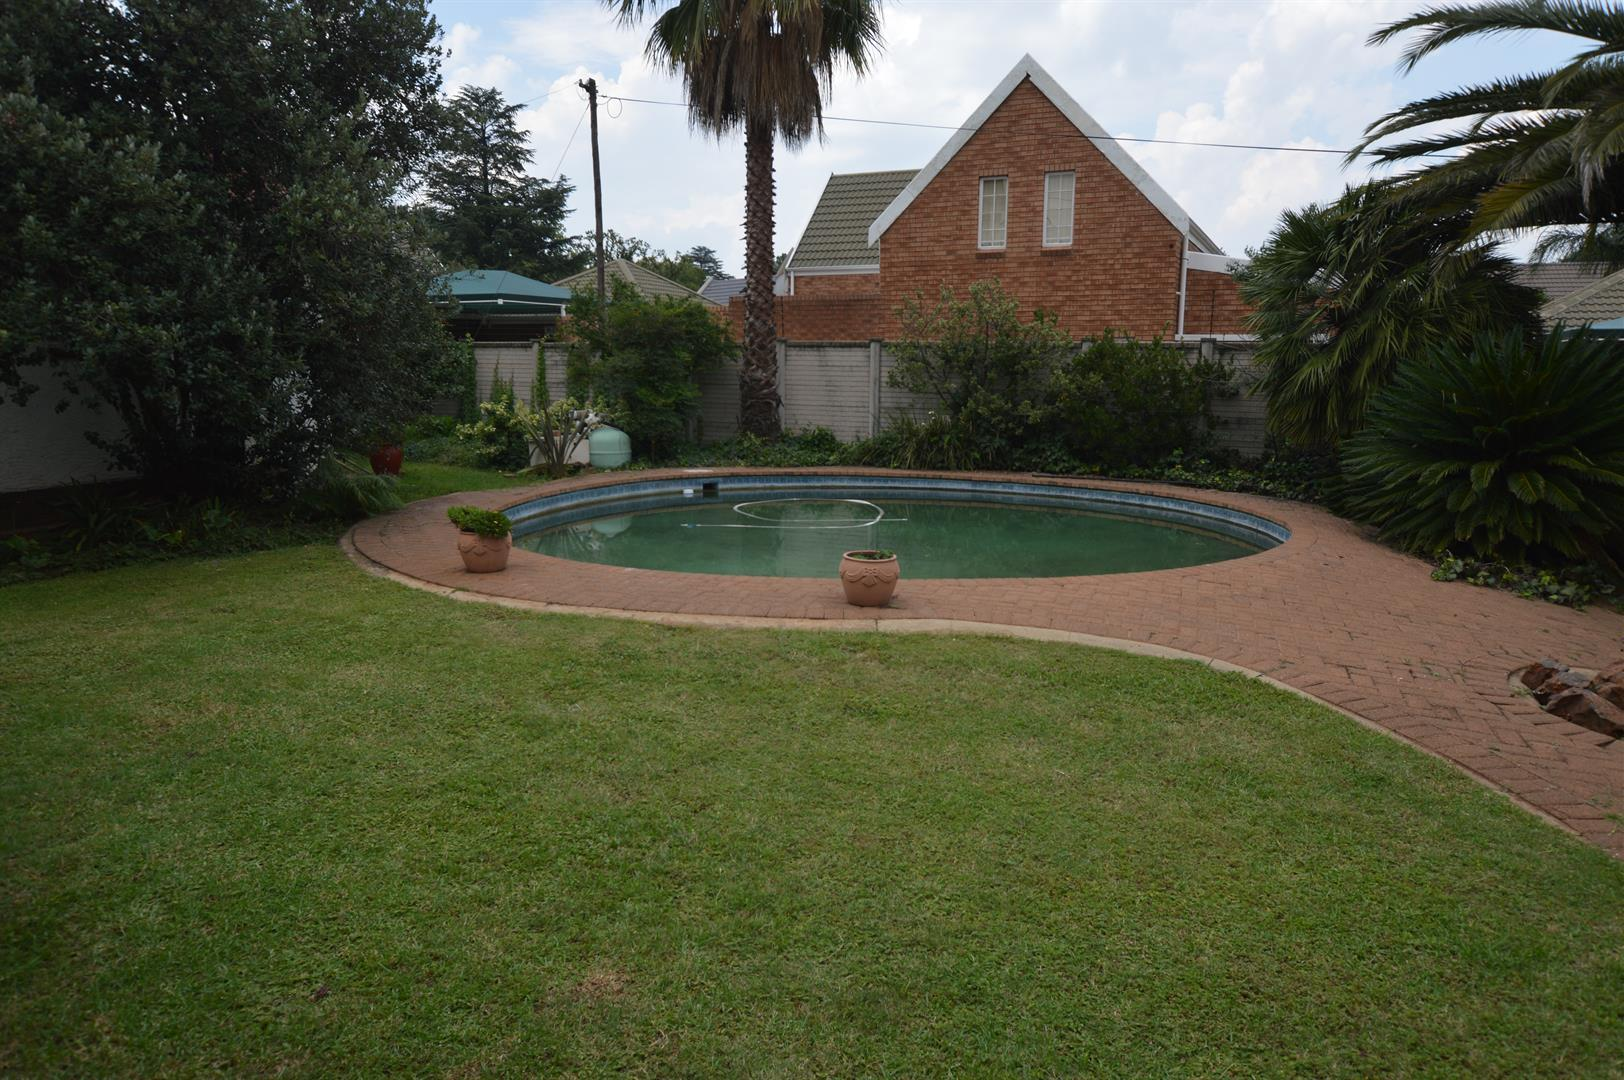 Vanderbijlpark Sw 5 property for sale. Ref No: 13443705. Picture no 22